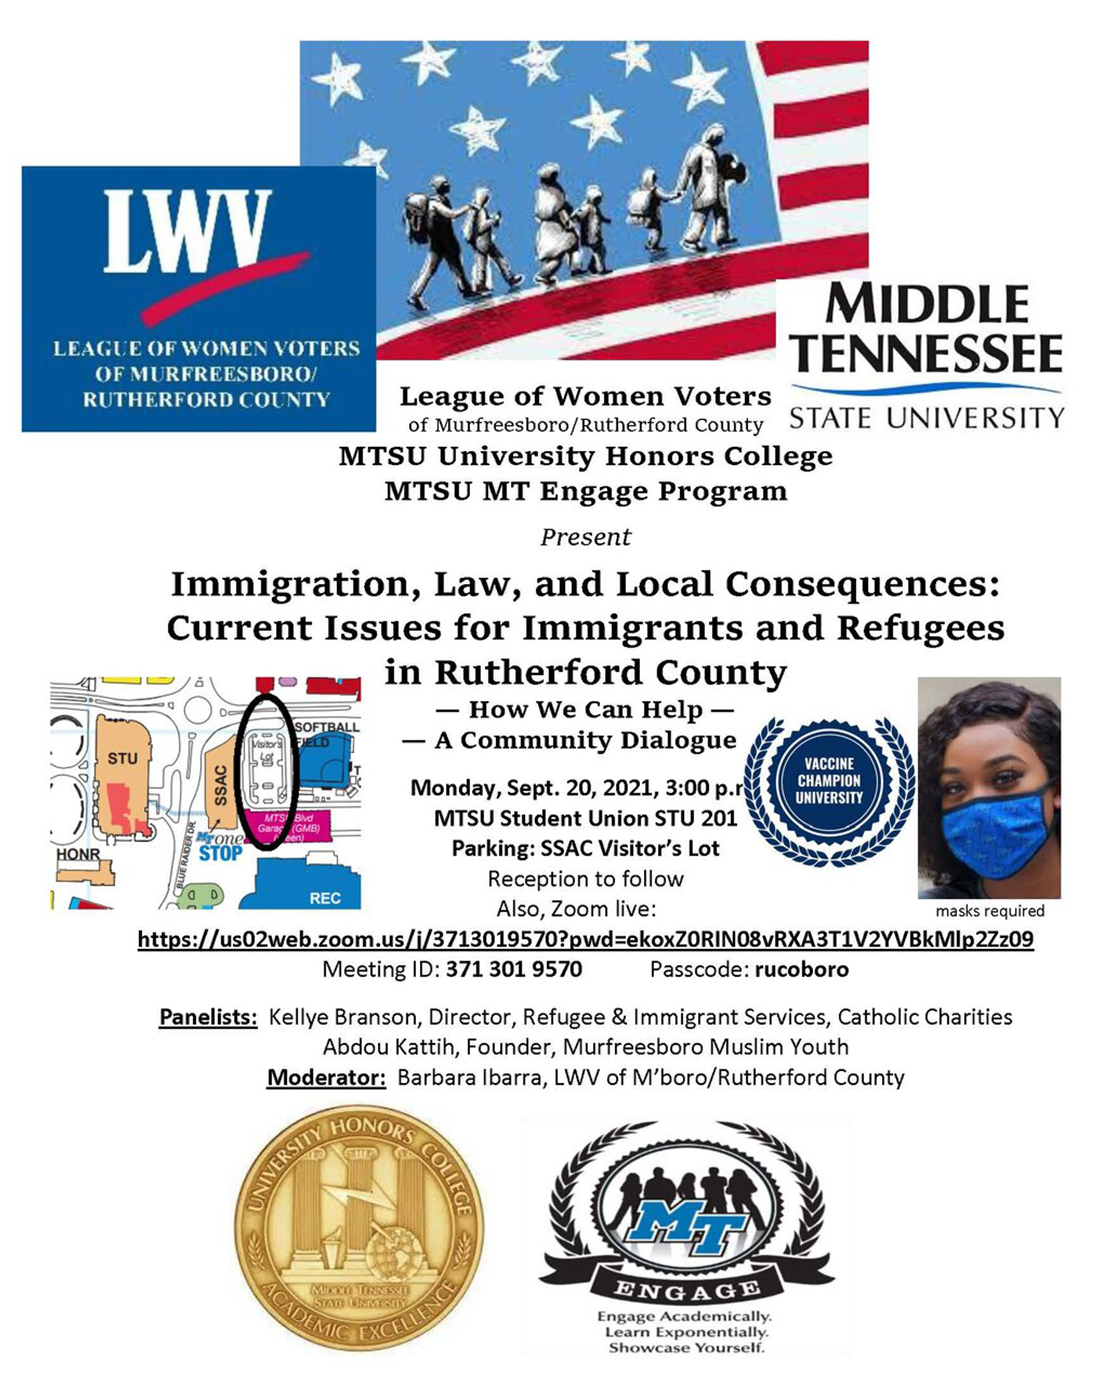 """flyer for """"Immigration, Law and Local Consequences: Current Issues for Immigrants and Refugees in Rutherford County"""" panel discussion set Monday, Sept. 20, at 3 p.m. Central in Room 201 of MTSU's Student Union and online via Zoom."""